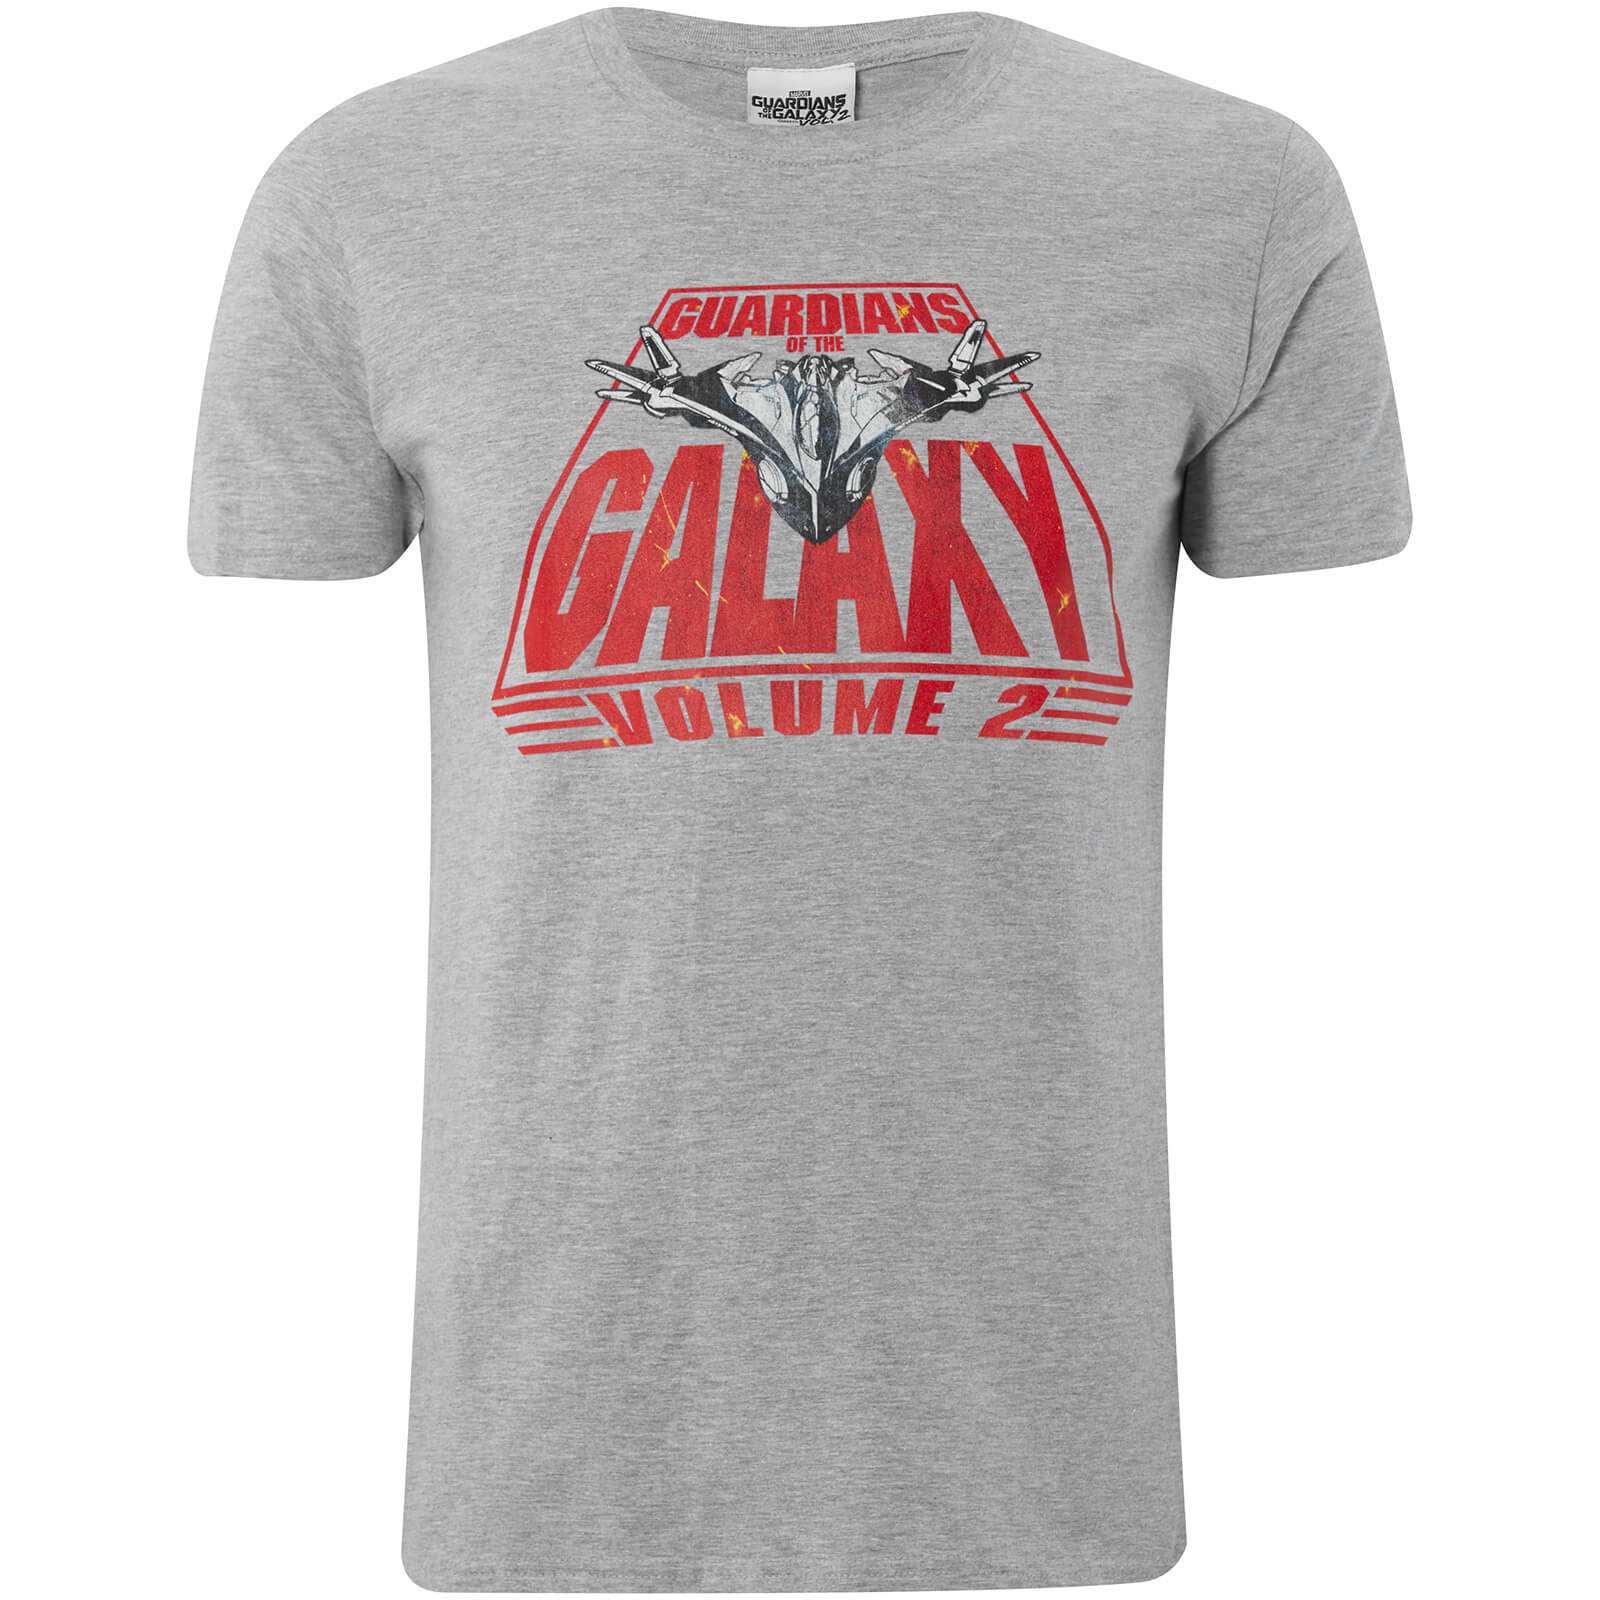 Marvel Guardians of the Galaxy Vol. 2 Milano Heren t-shirt - Grijs